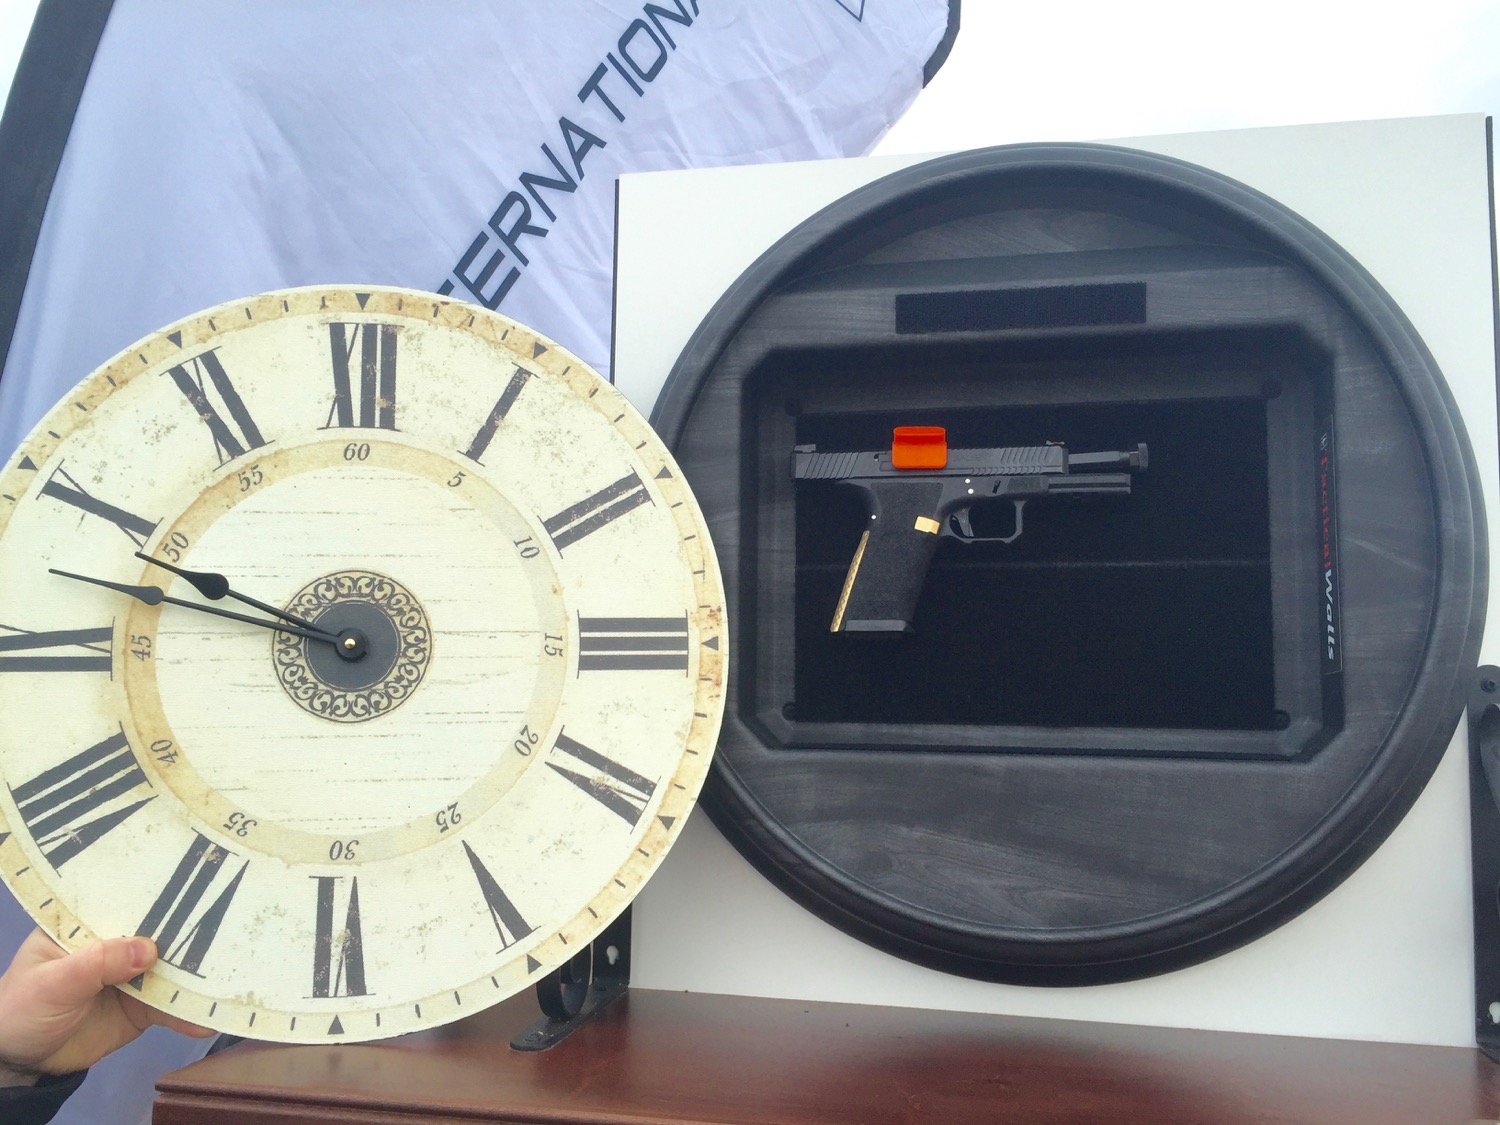 Clock face removed, exposing the compartment